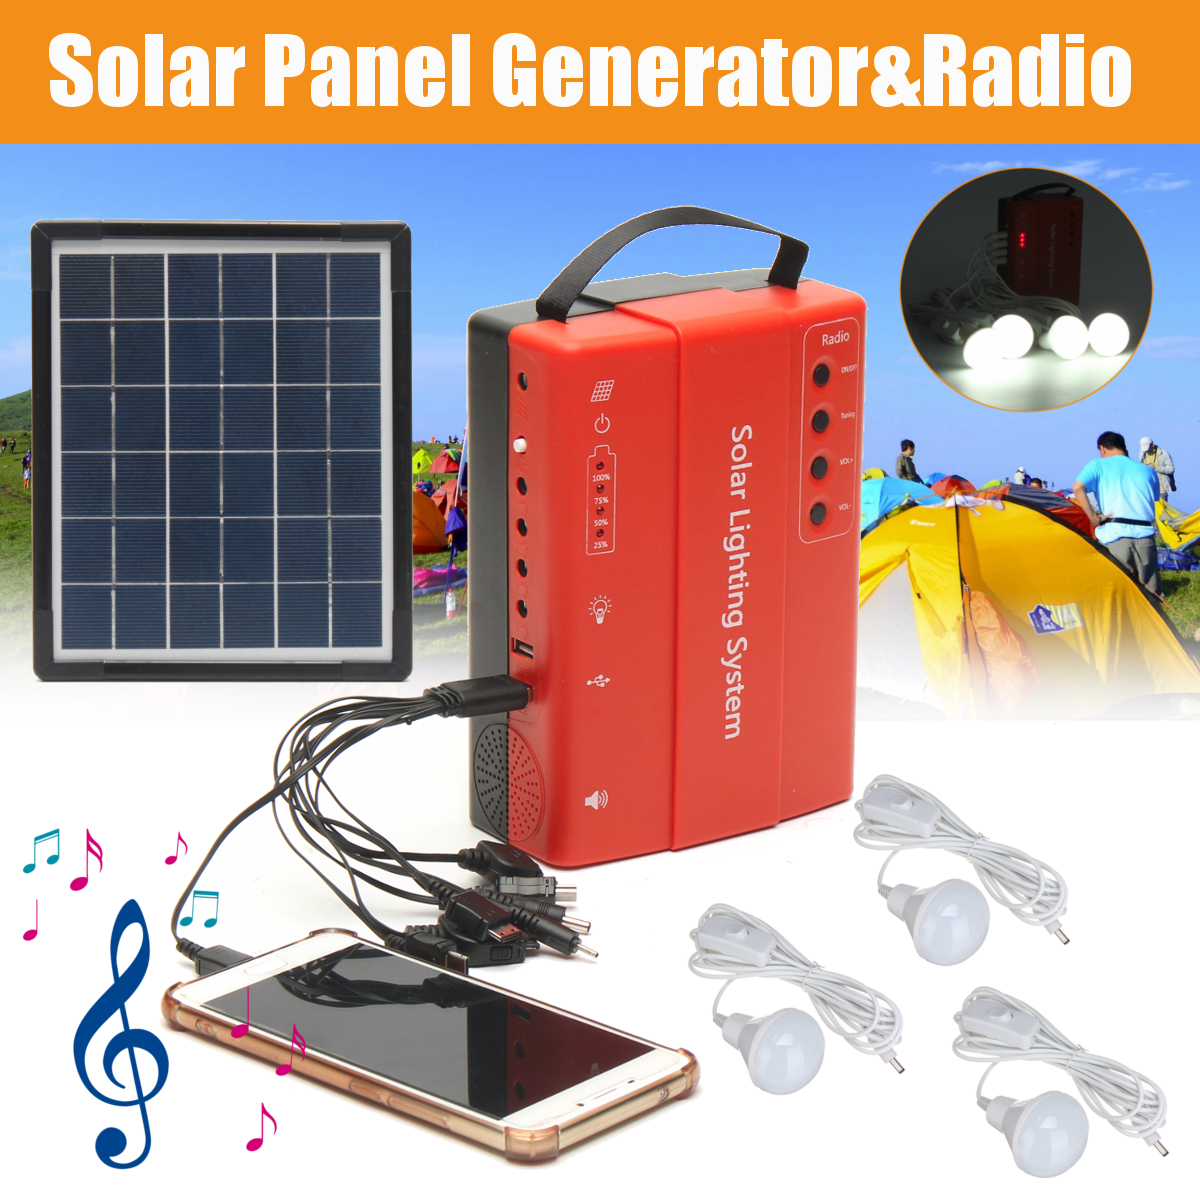 Solar Panel Power Storage Generator System LED Light USB Charger Portable Home Outdoor LED Lighting System Support FM Radio icoco 3 in 1 emergency charger flashlight hand crank generator wind up solar dynamo powered fm am radio charger led flashlight